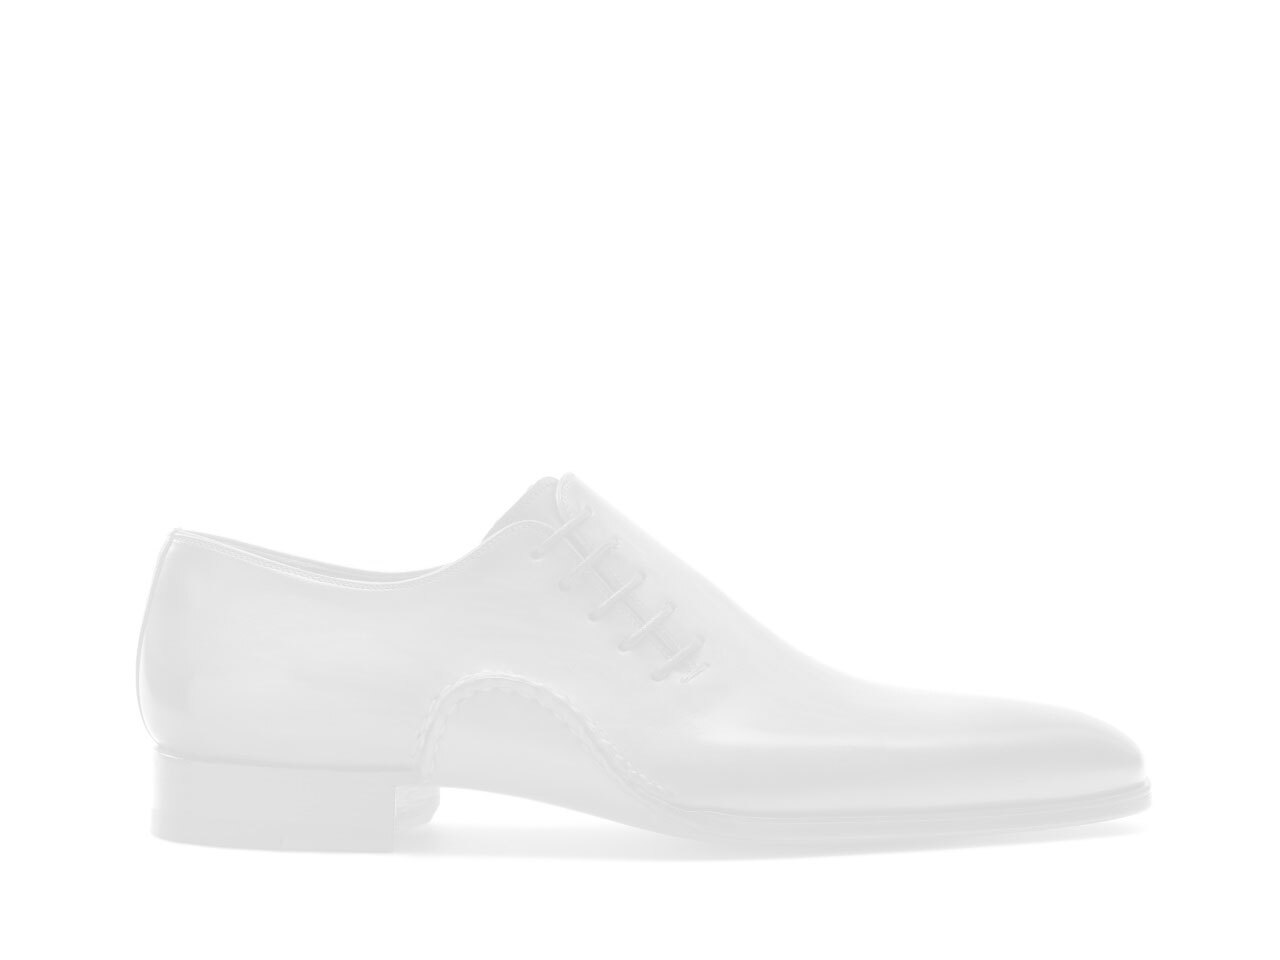 Side view of the Magnanni Elonso Lo Black Men's Sneakers